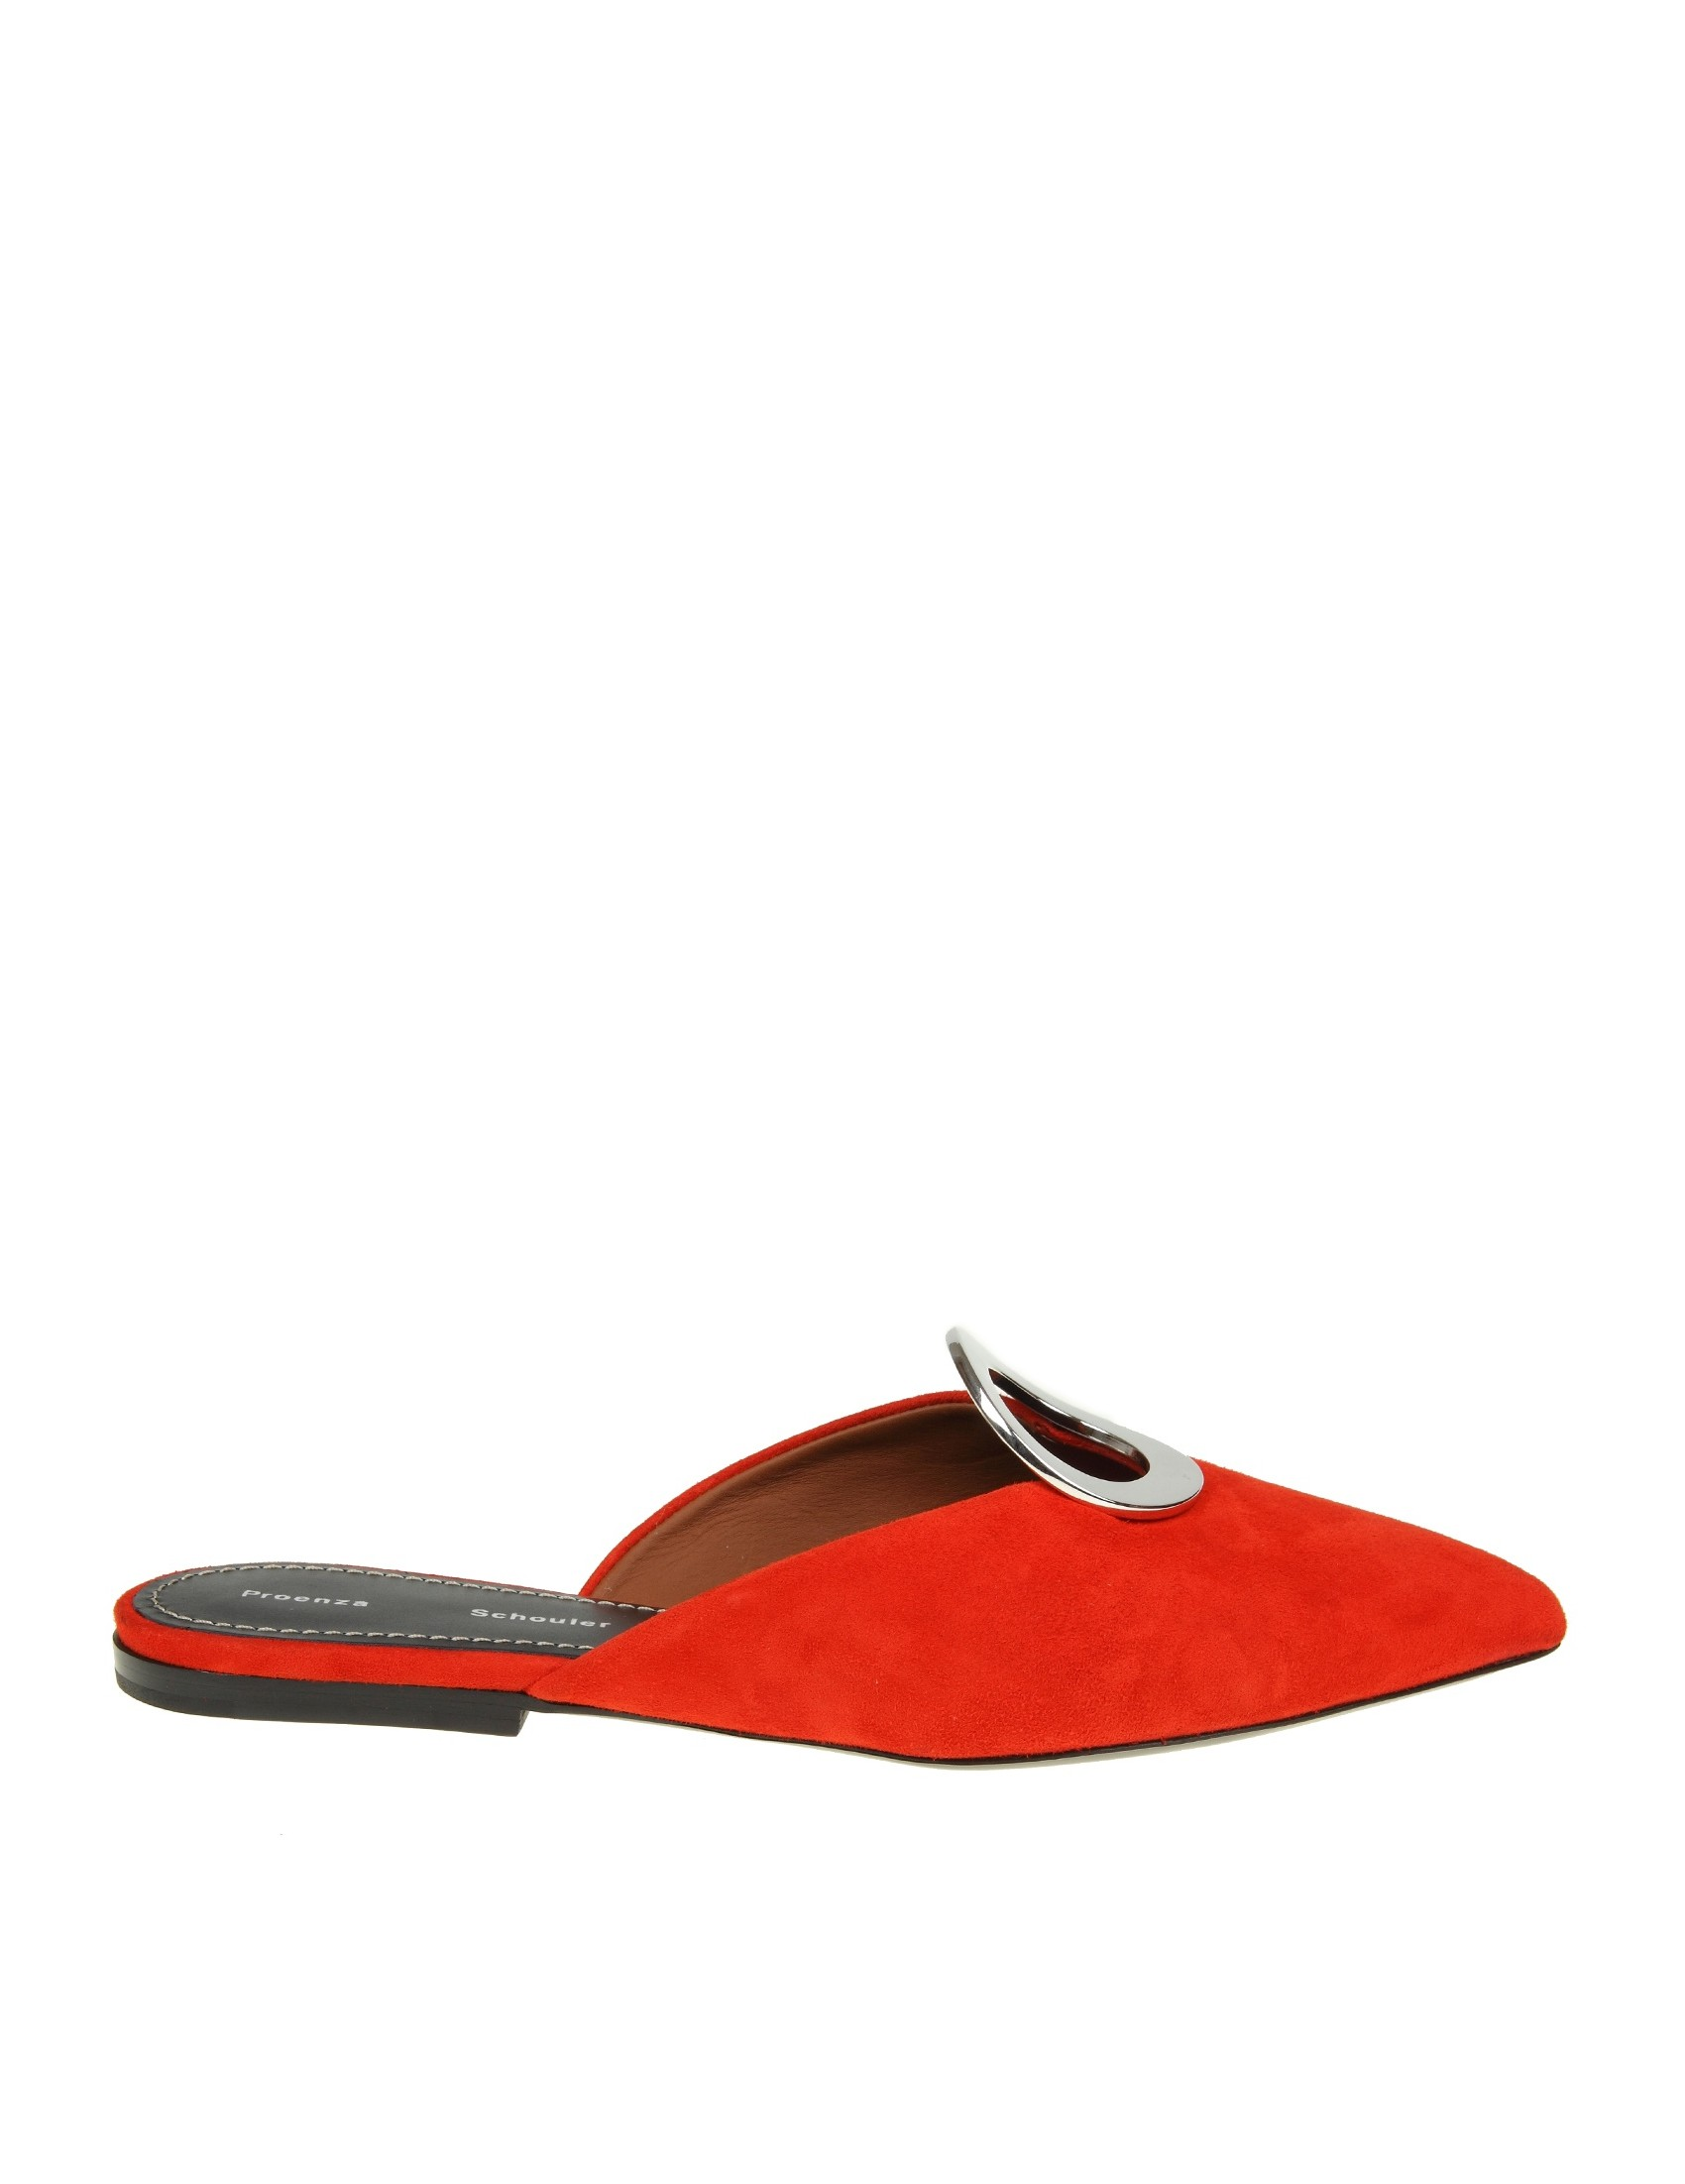 Proenza Schouler Sabot In Red Suede Best Online Up To Date Low Price Cheap Online Cheap Price Factory Outlet 5hhw8